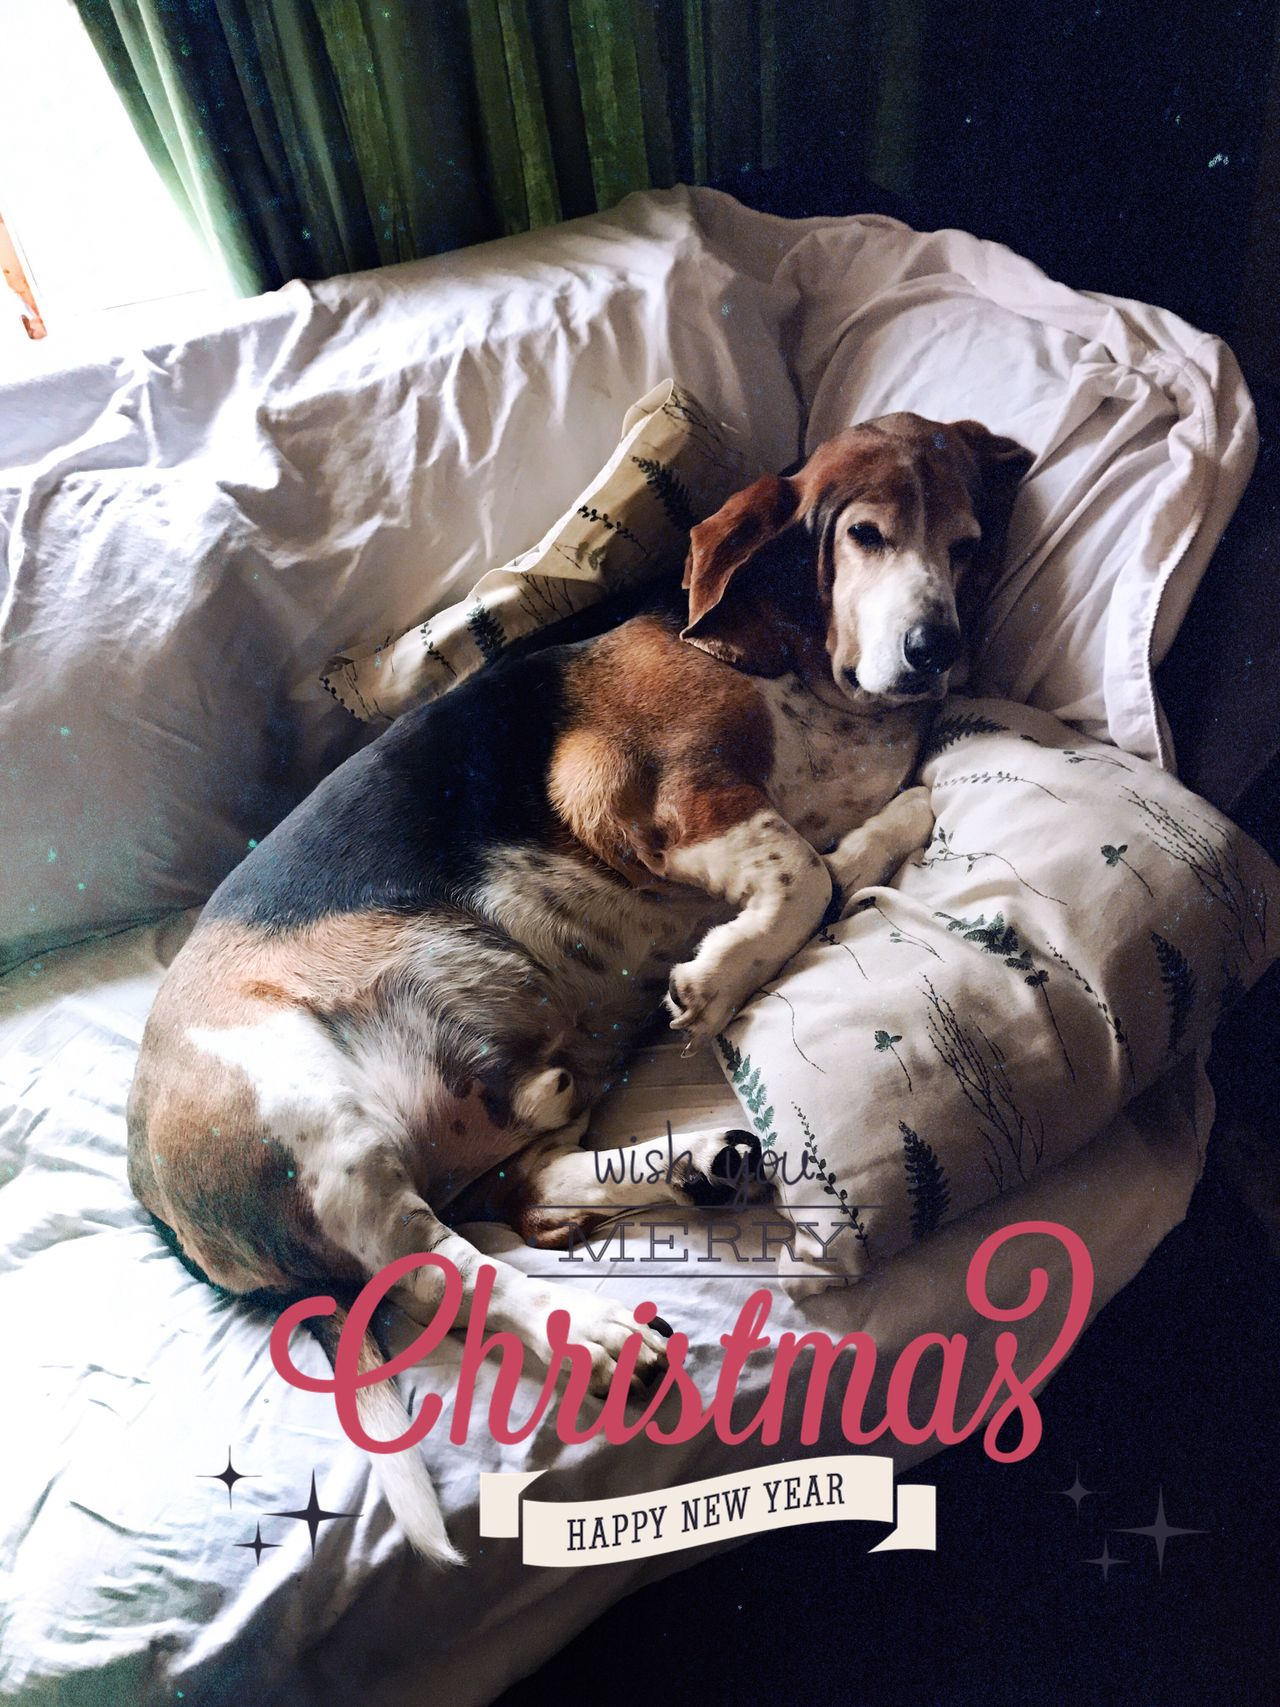 Waiting for Christmas Dog Domestic Animals One Animal Indoors  Seniorhoundsrock Iphonephotography Tistheseason Looking At Camera Portrait Pampered Pooch Upclose And Personal Ilovemybassethounds Bassetmoments Bassethoundadventures Bassethoundsare Best